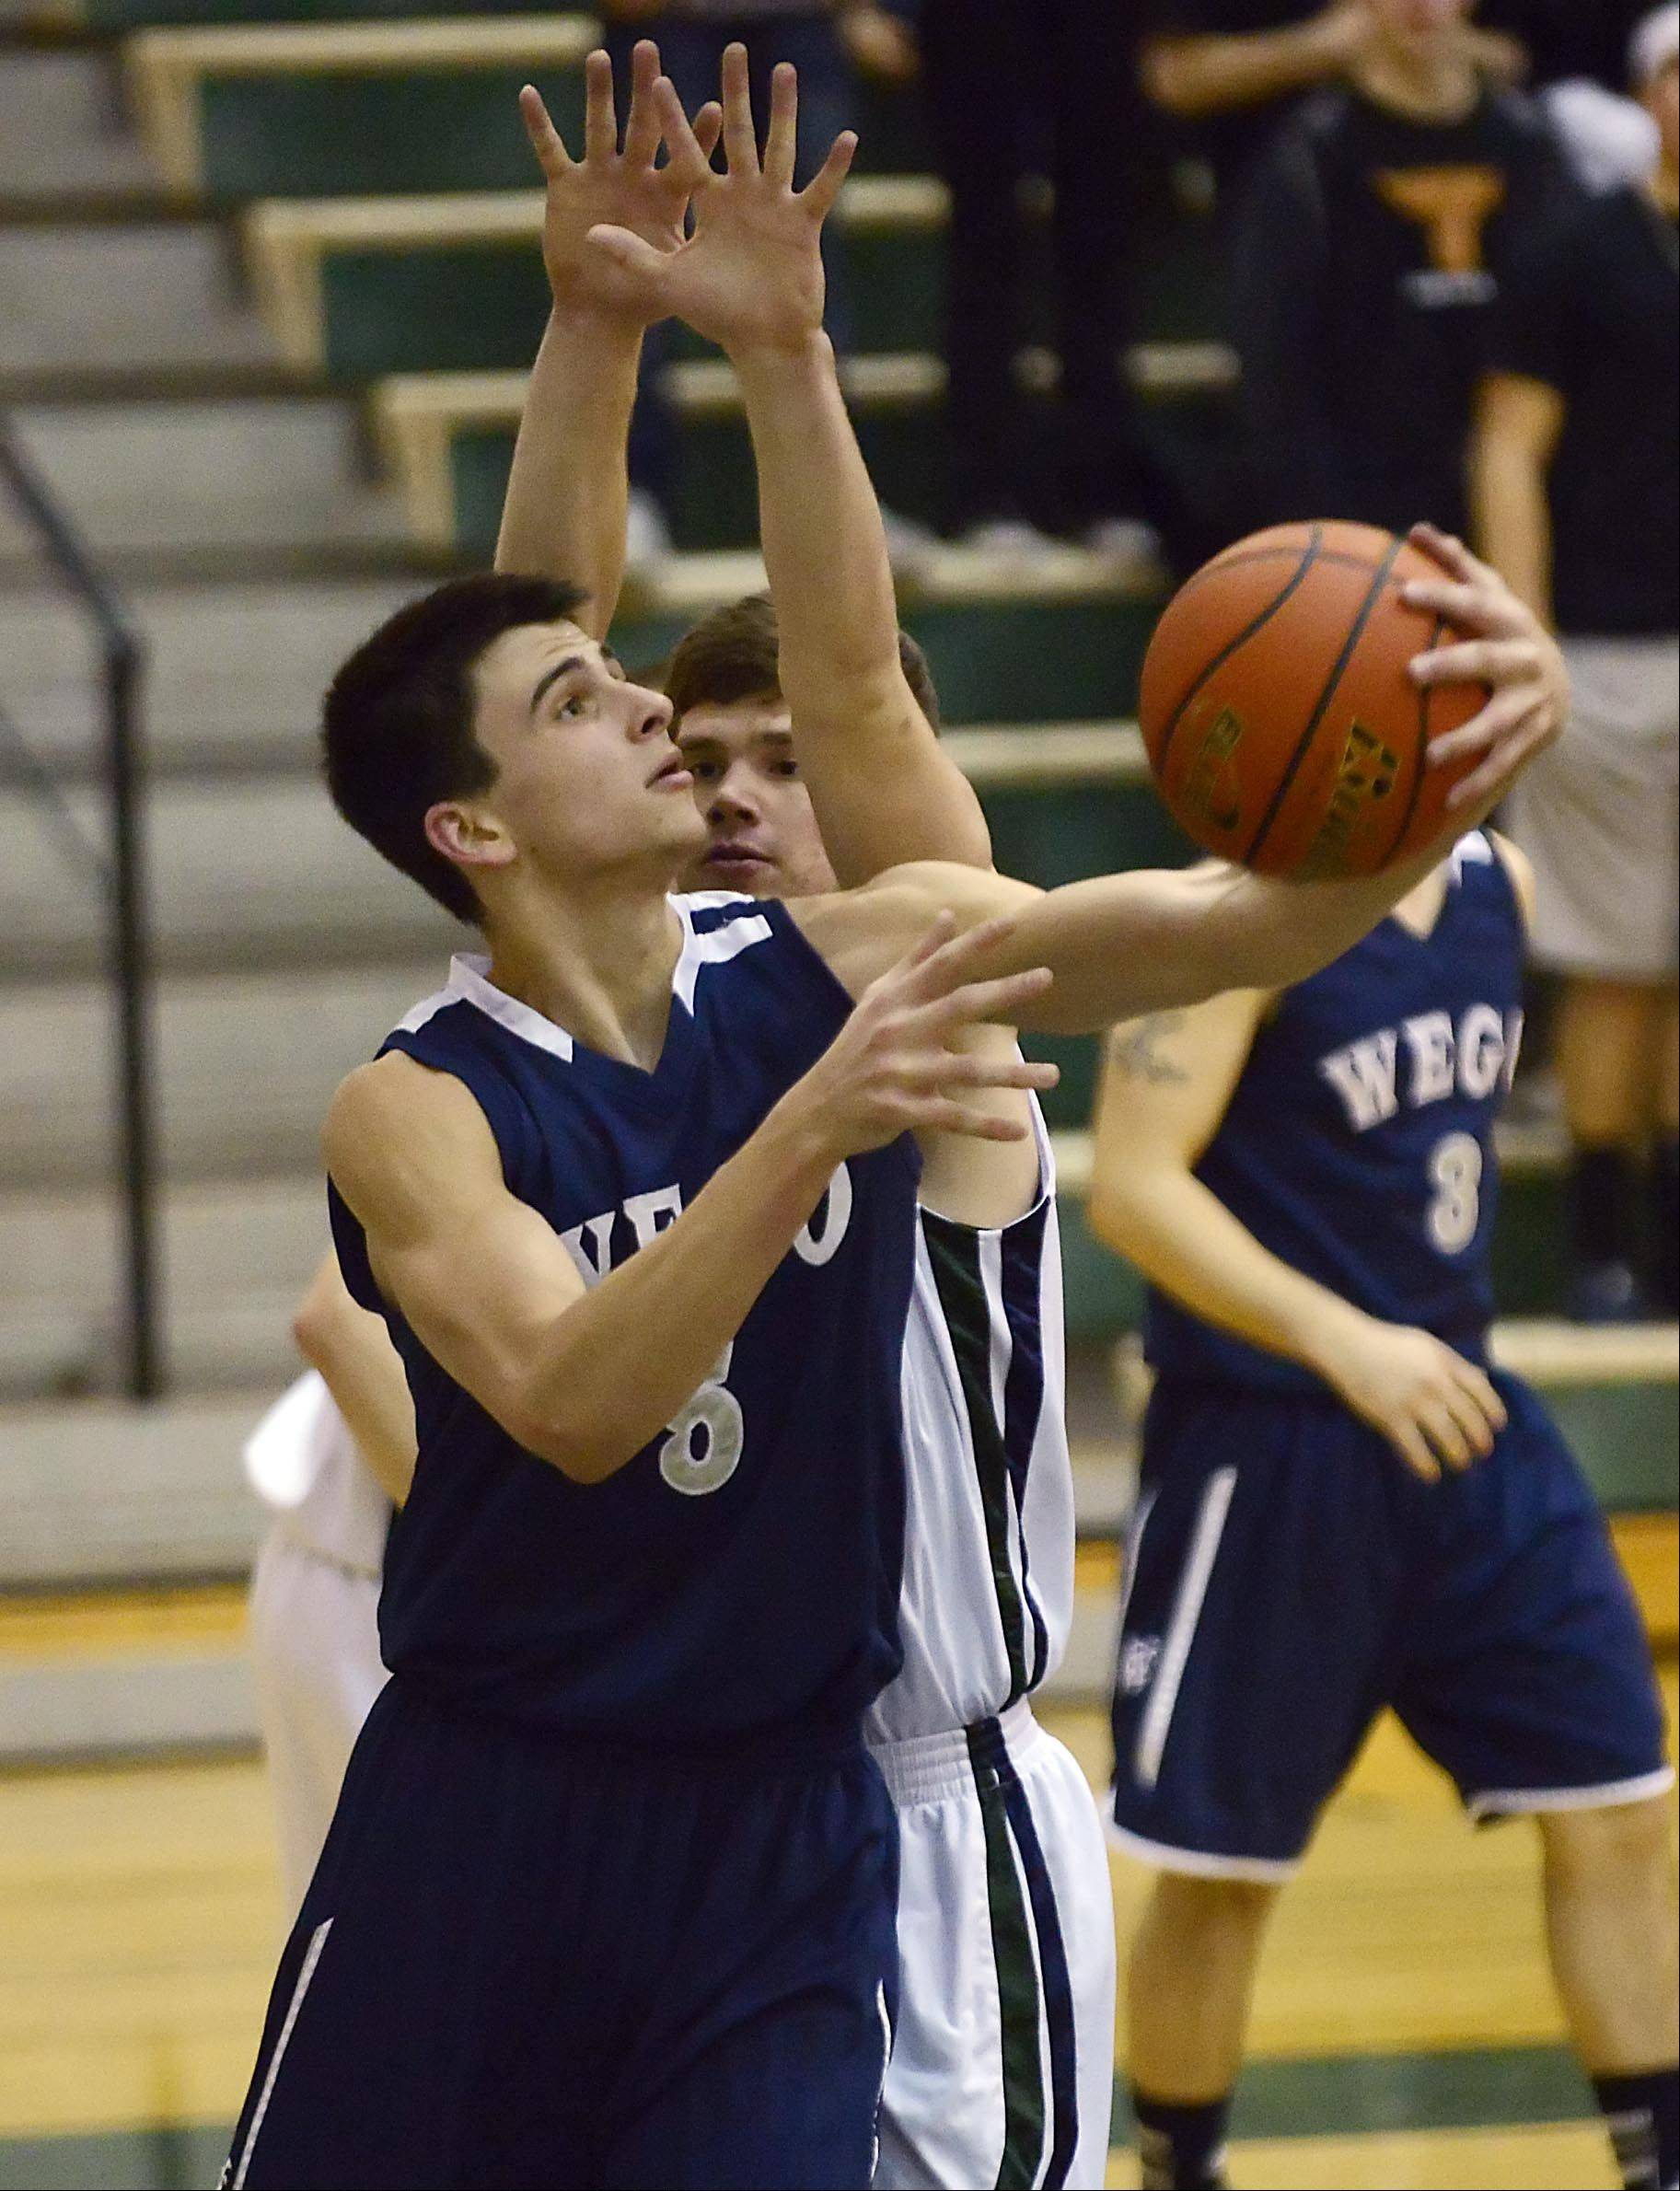 West Chicago�s John Konchar is averaging 31 points a game.